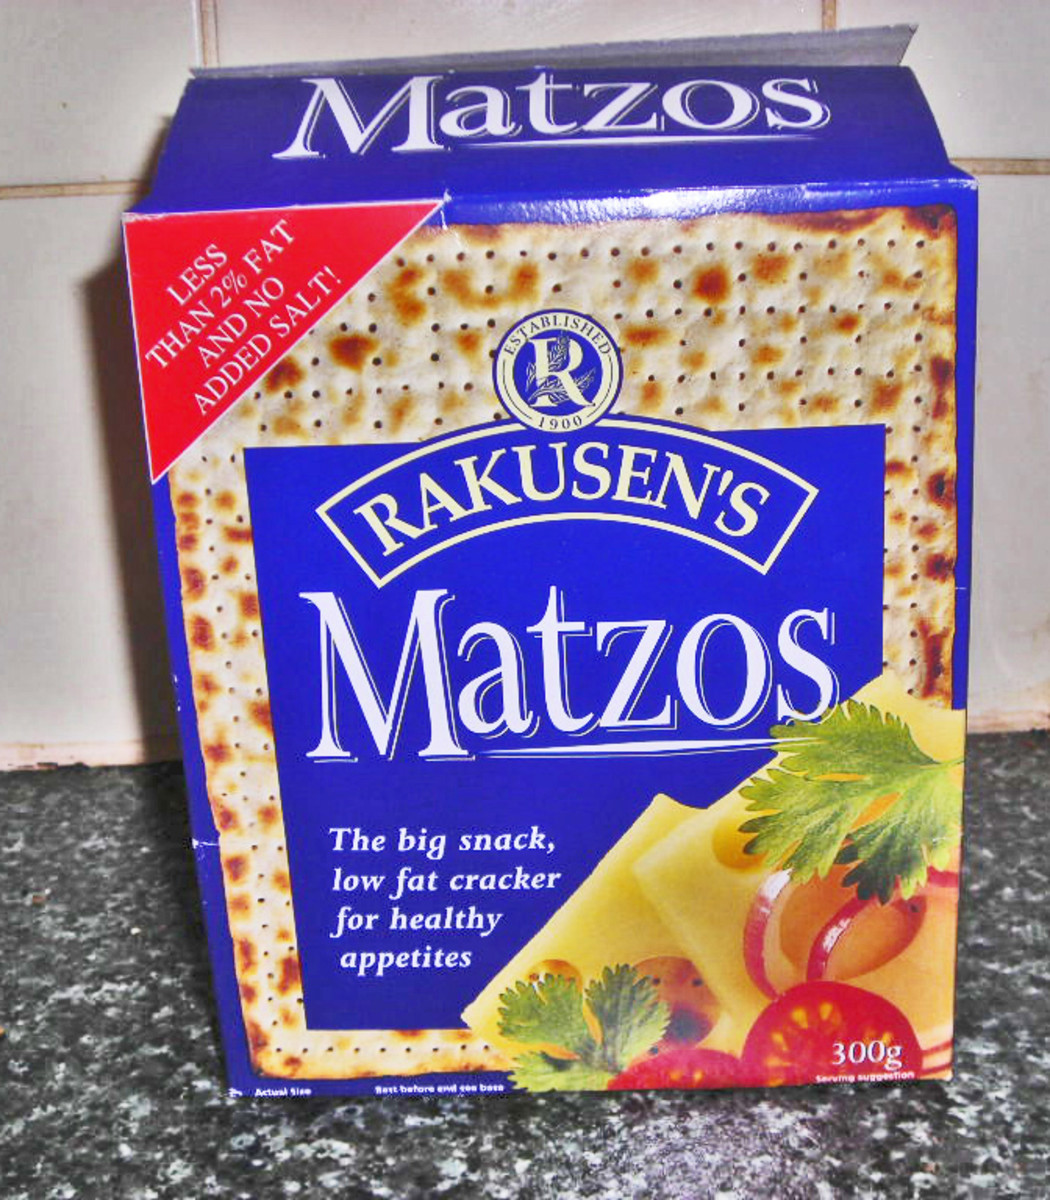 Matzo is a traditional unleavened bread